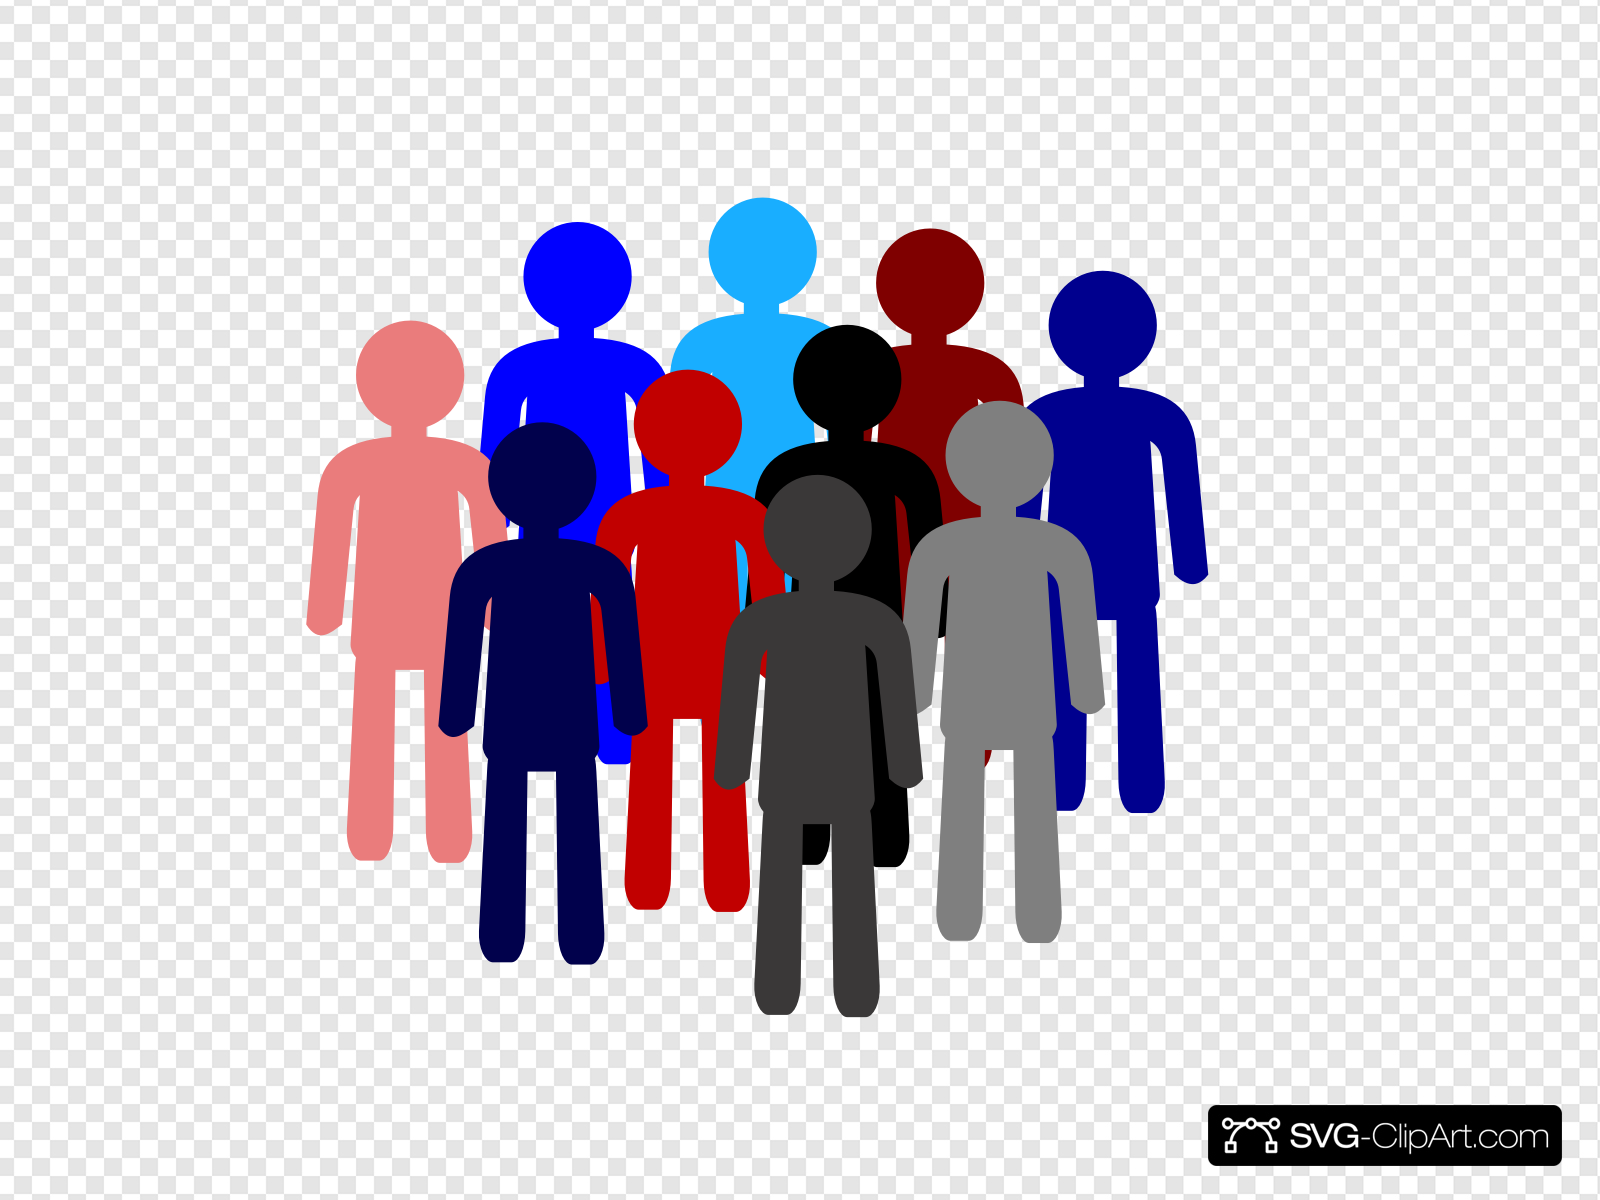 clip art free download Clip art icon and. Population clipart.